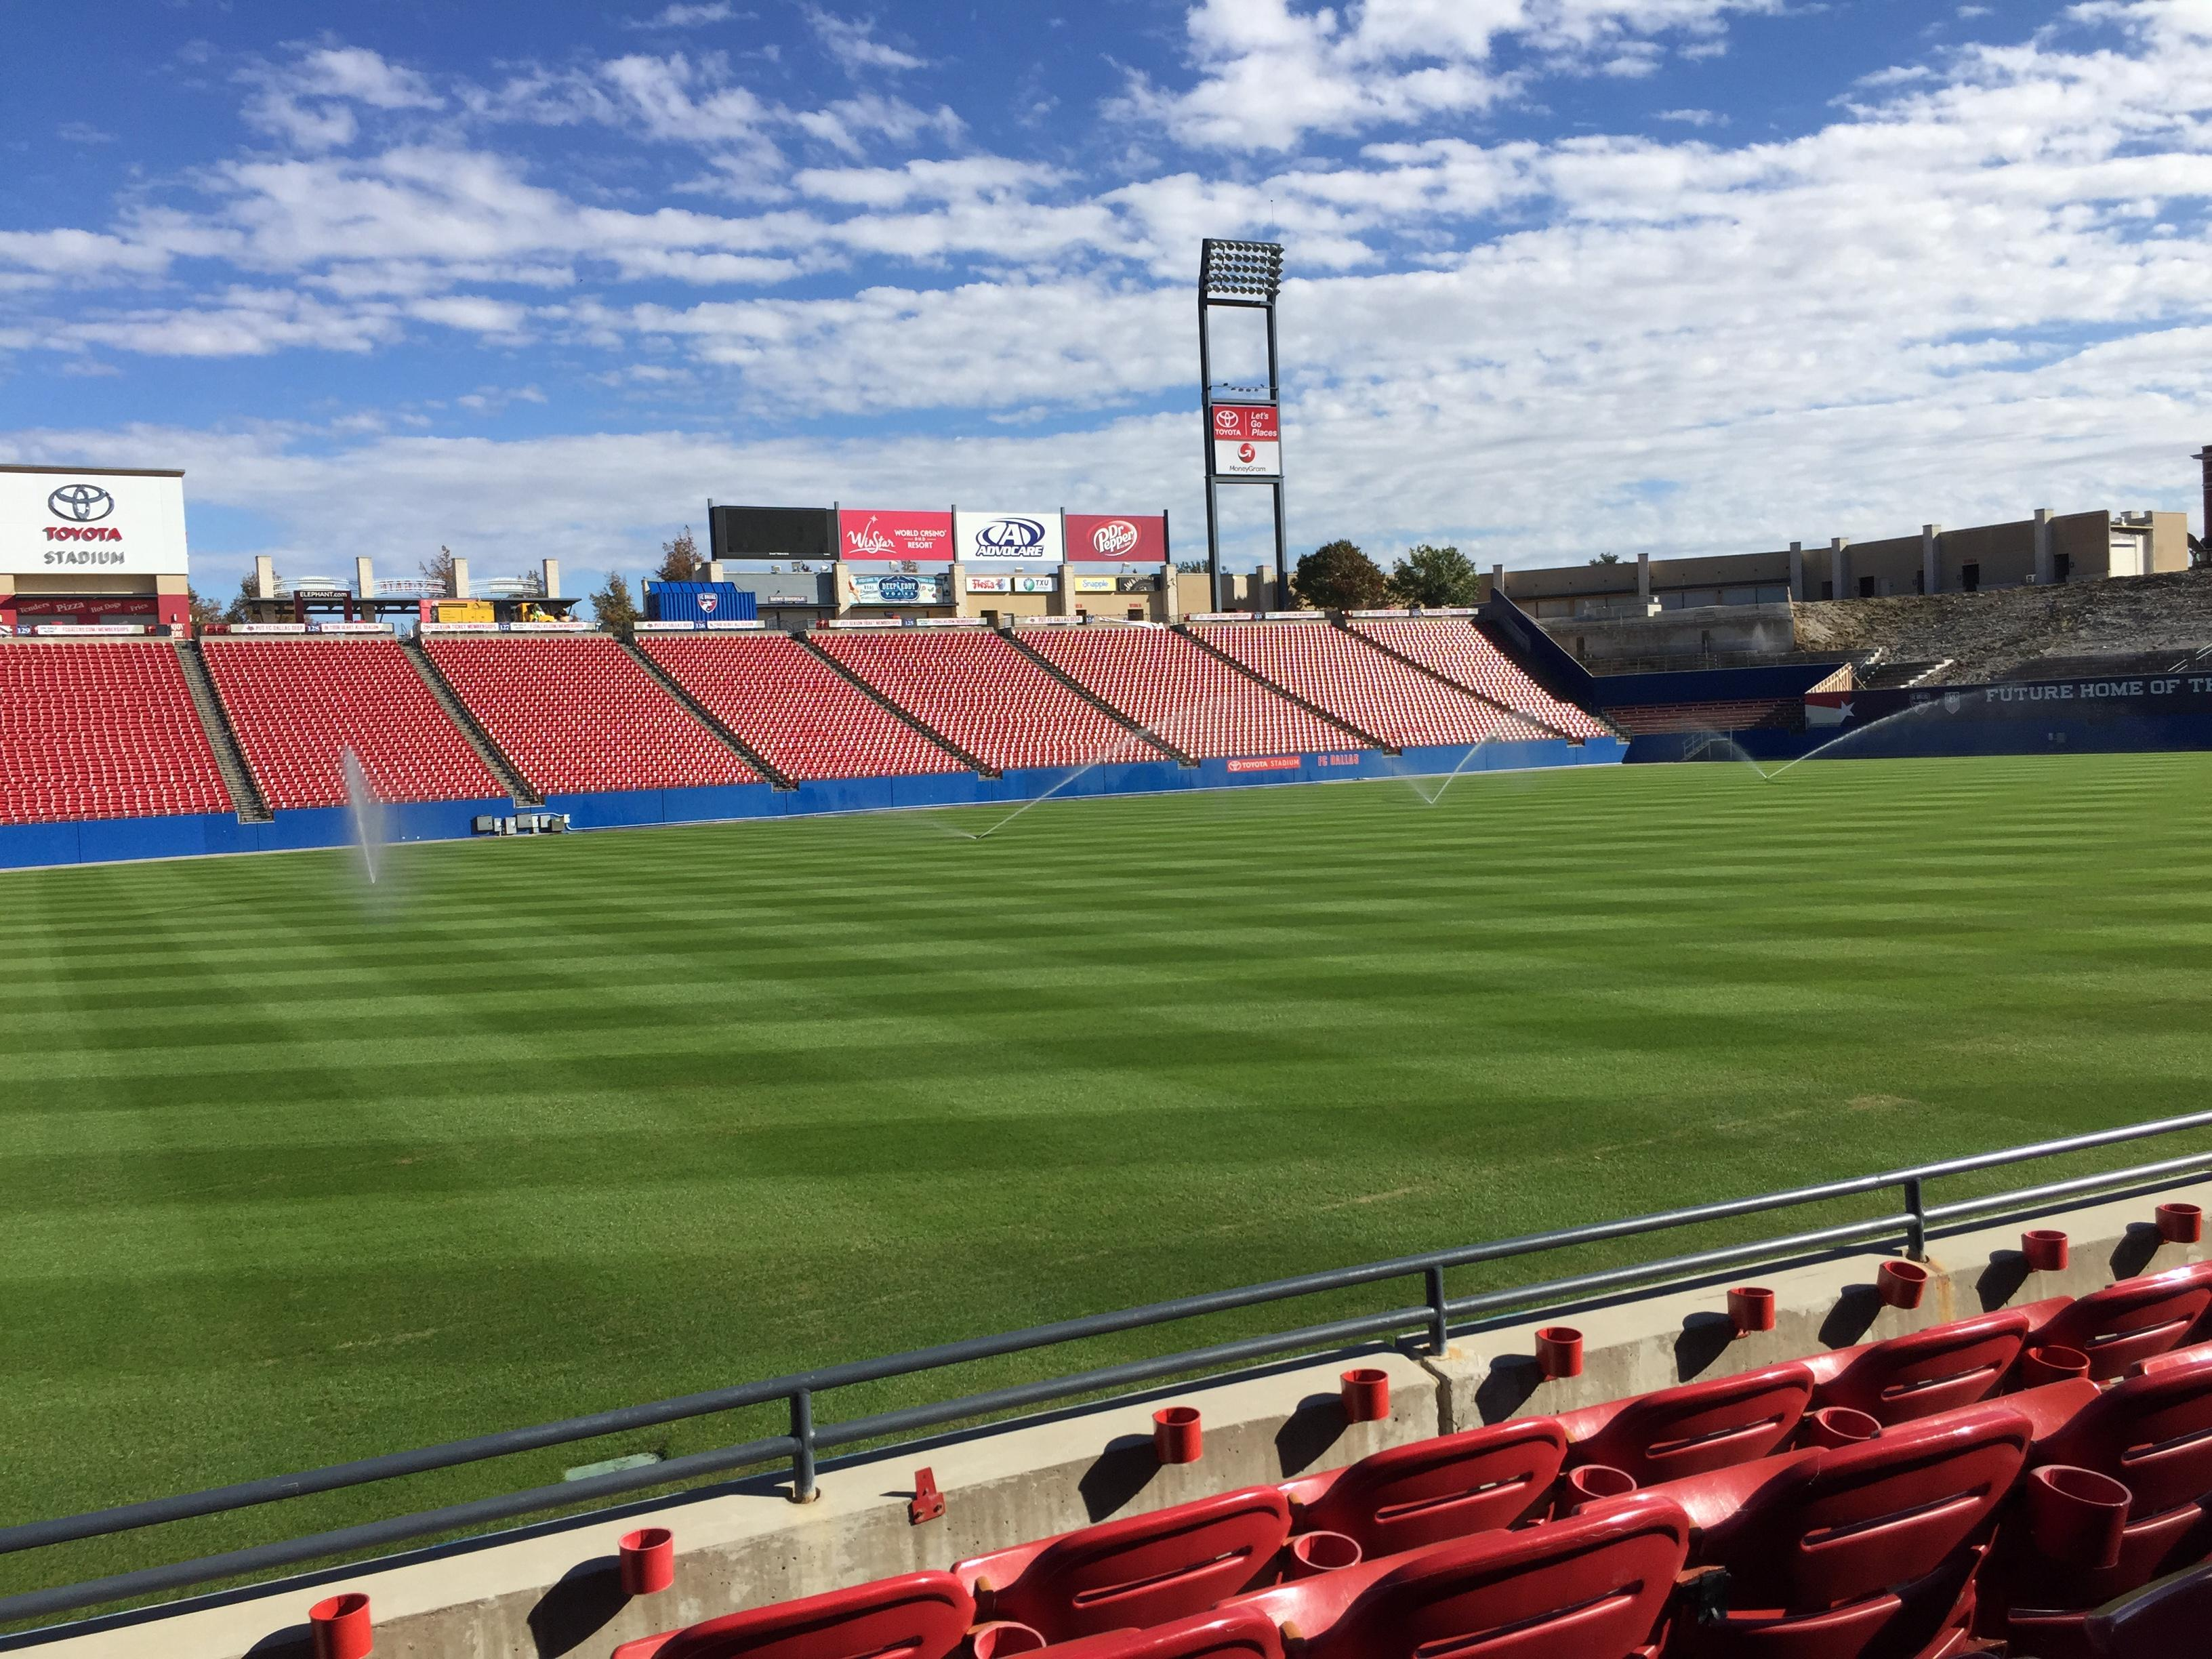 Toyota Stadium Section 104 Row 4 Seat 5